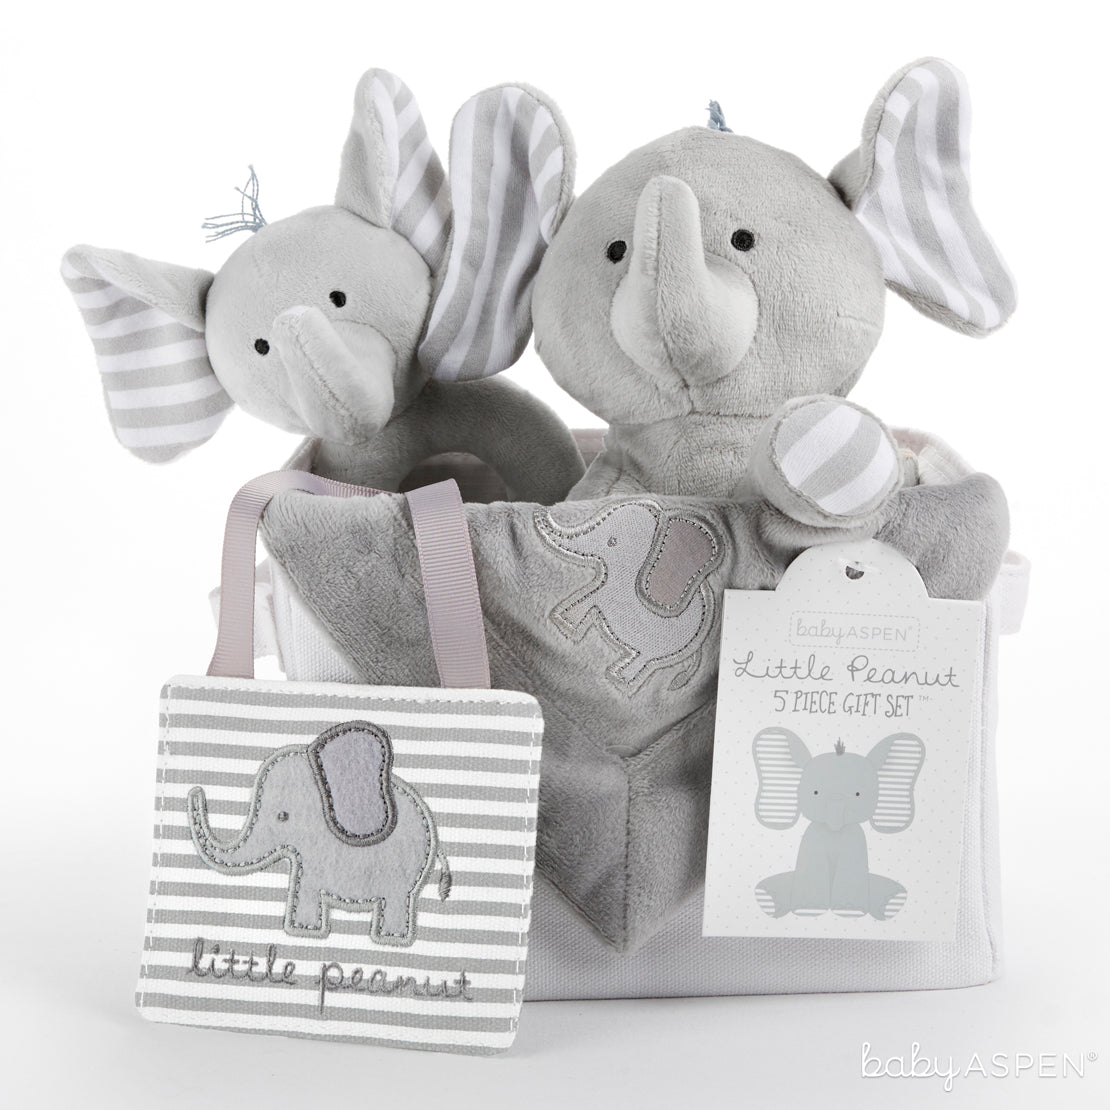 Elephant 5 Piece Gift Set | Sweet Elephant Themed Gifts For Your Little Peanut | Baby Aspen